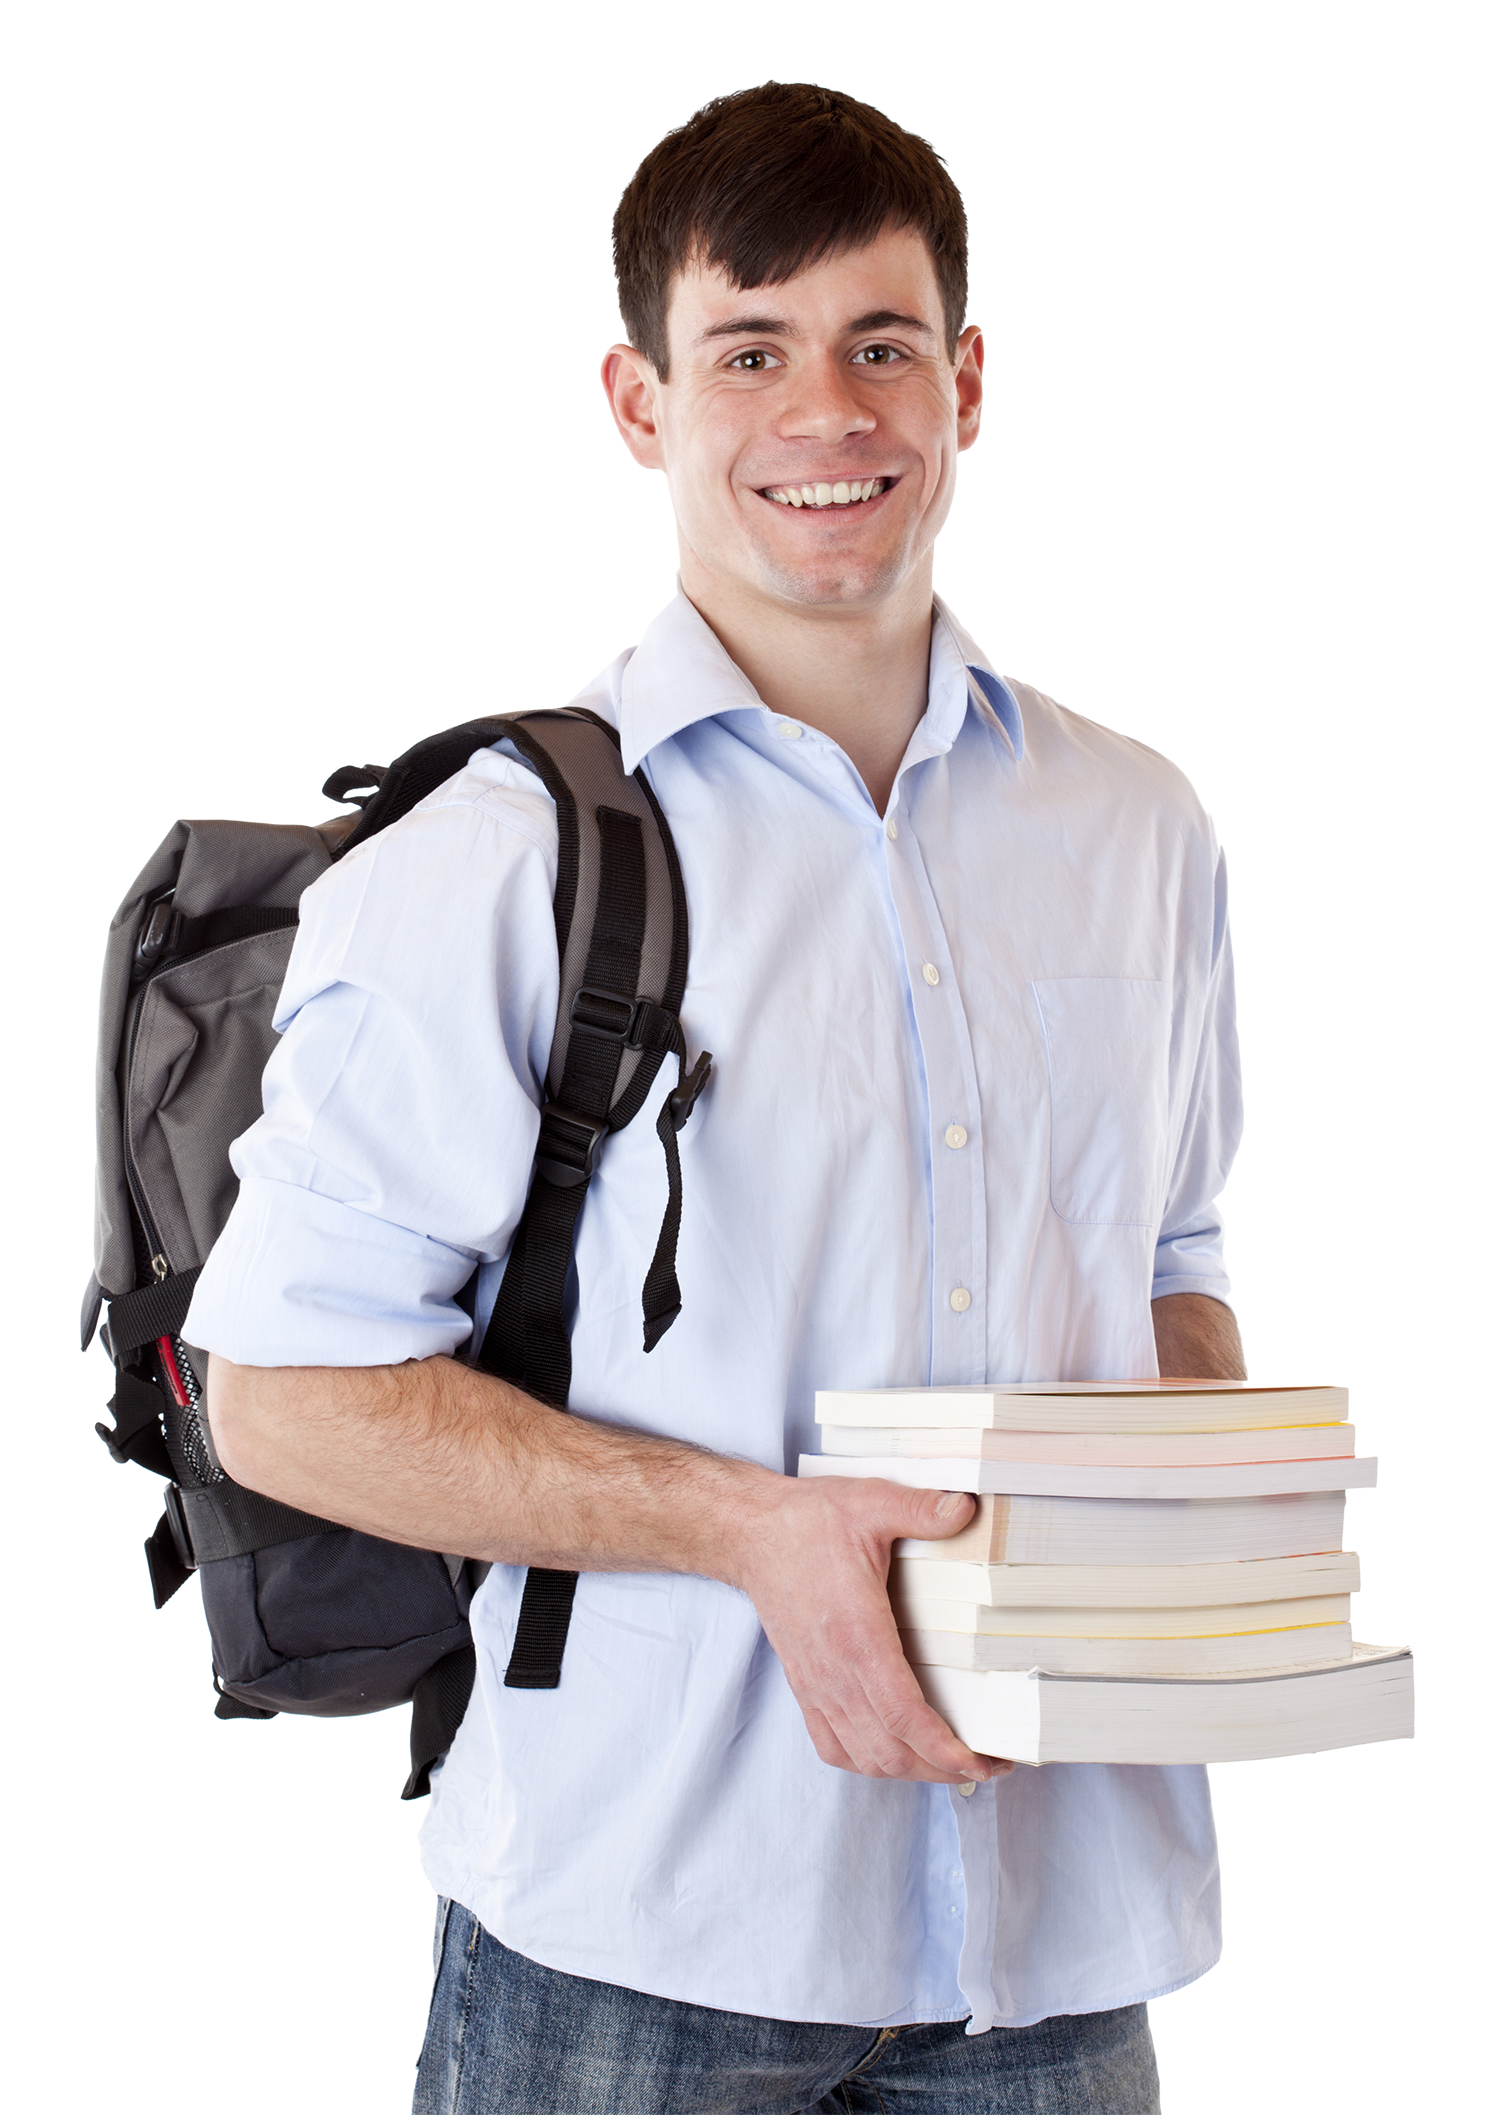 Student with backpack png. Images free download